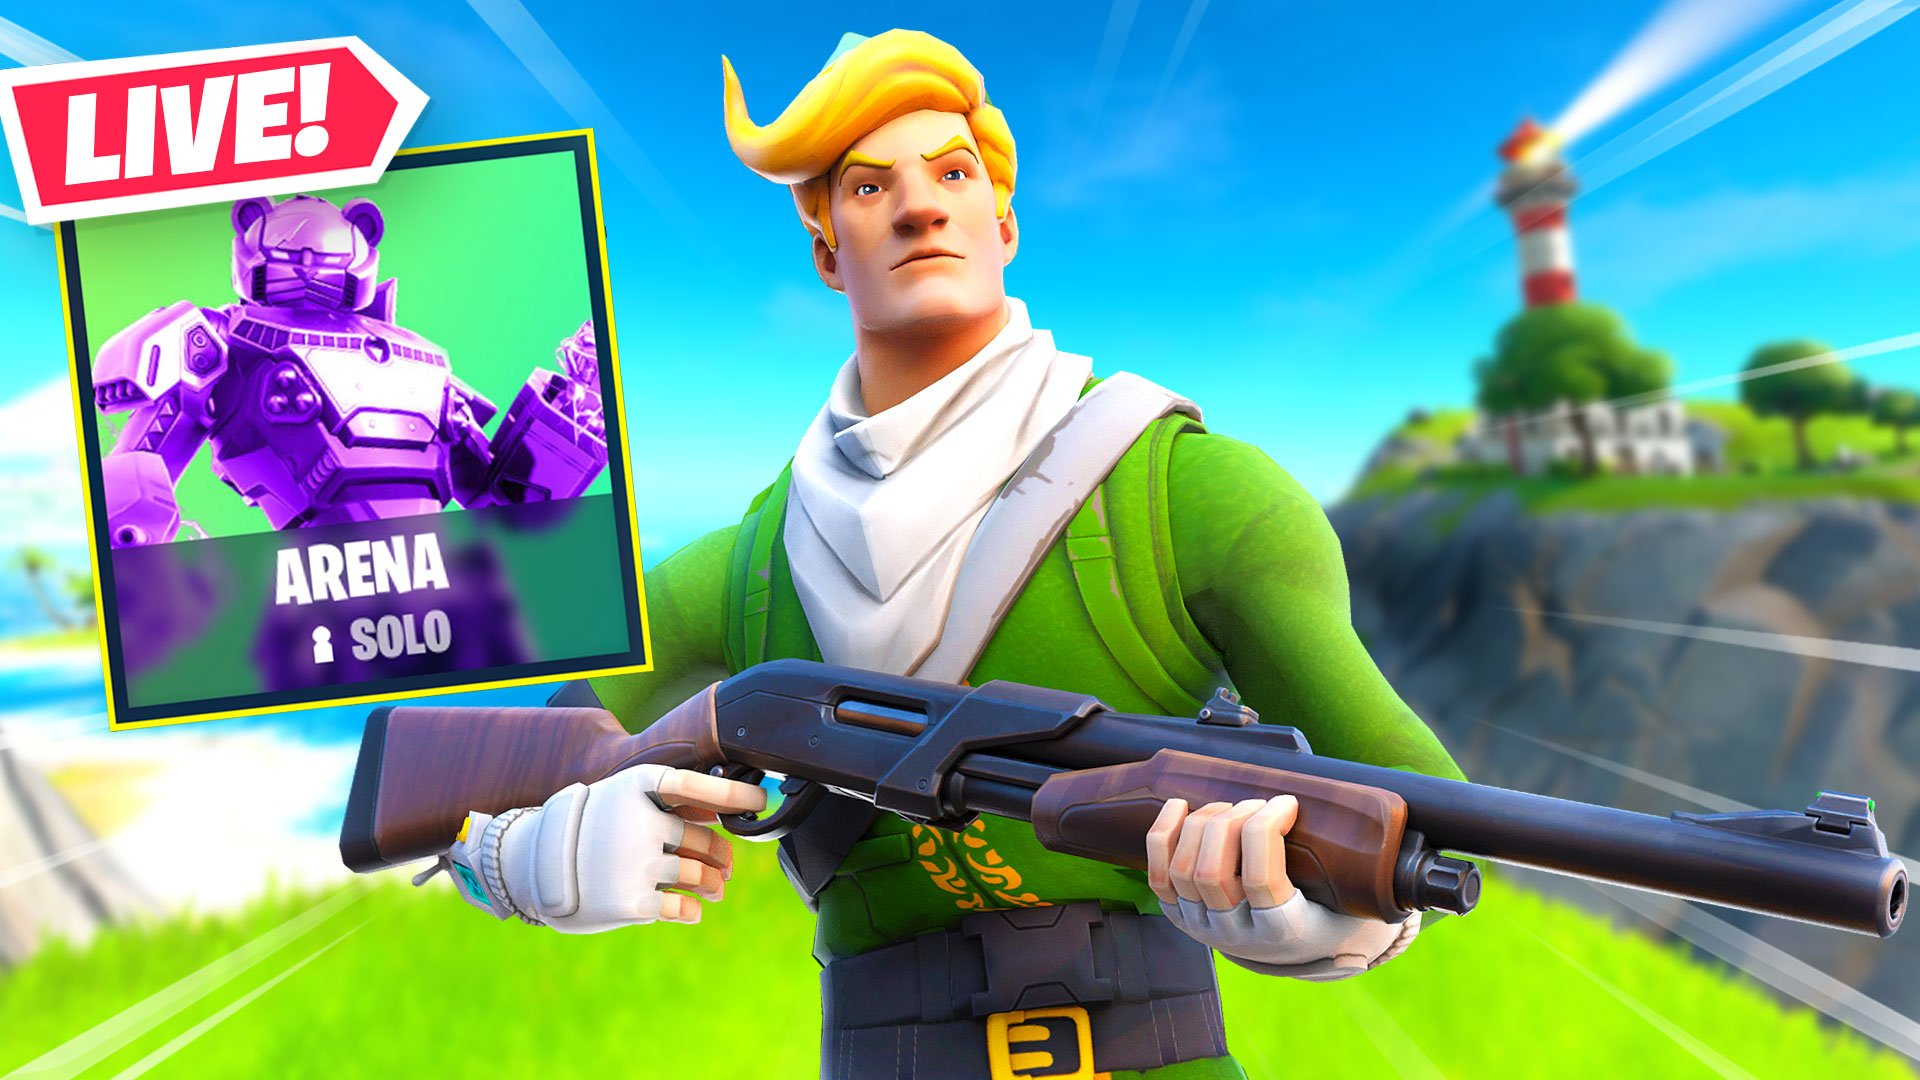 Lachlan And Preston Fortnite Pwr Lachlan On Twitter Jumping In To Some Arena Solos Come Through Https T Co Enwq5zwz05